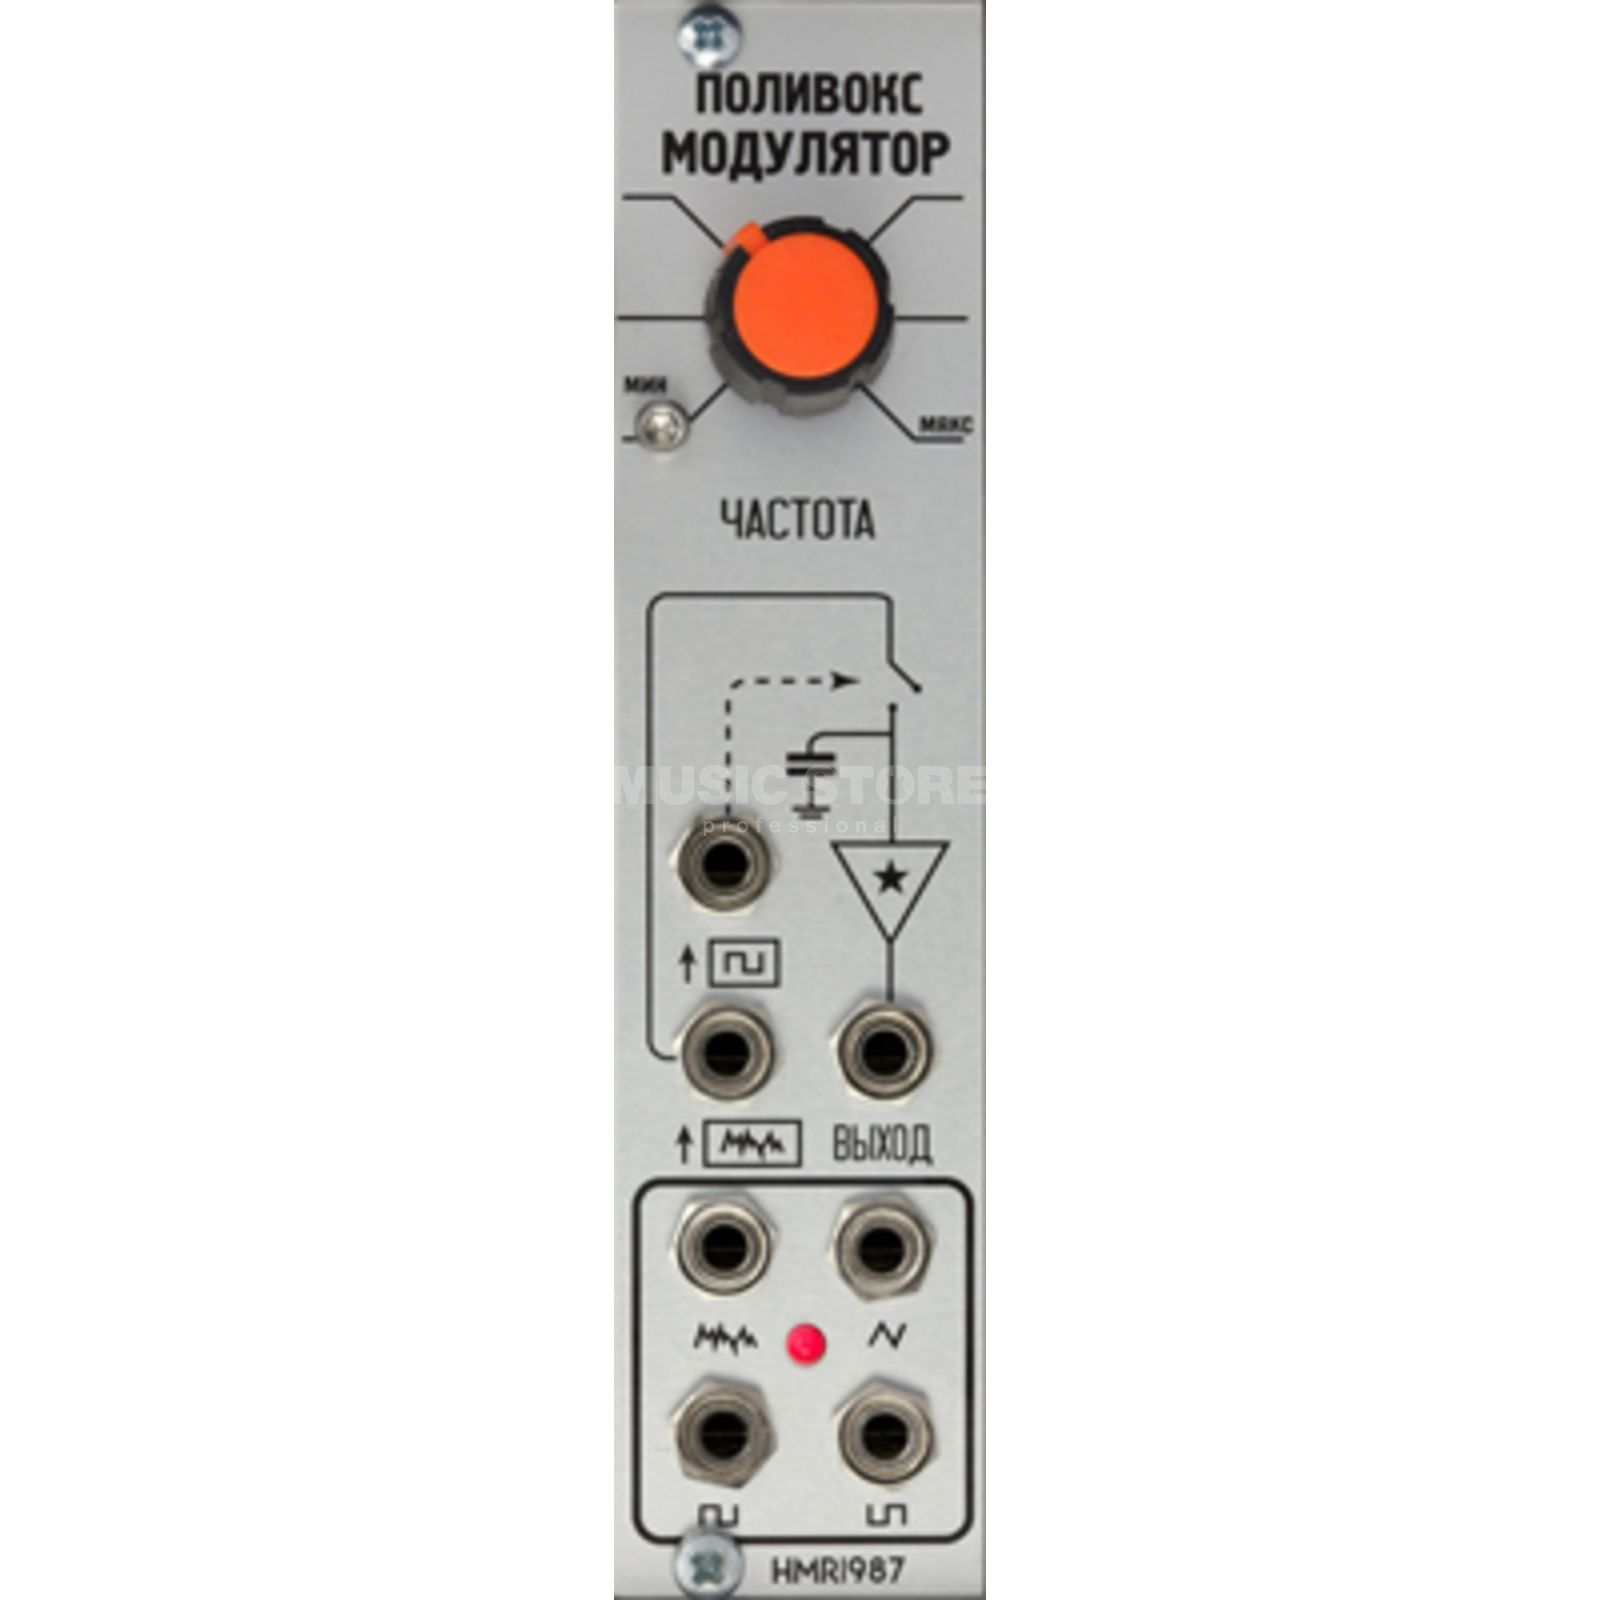 The Harvestman Polivoks Modulator Modulator Product Image